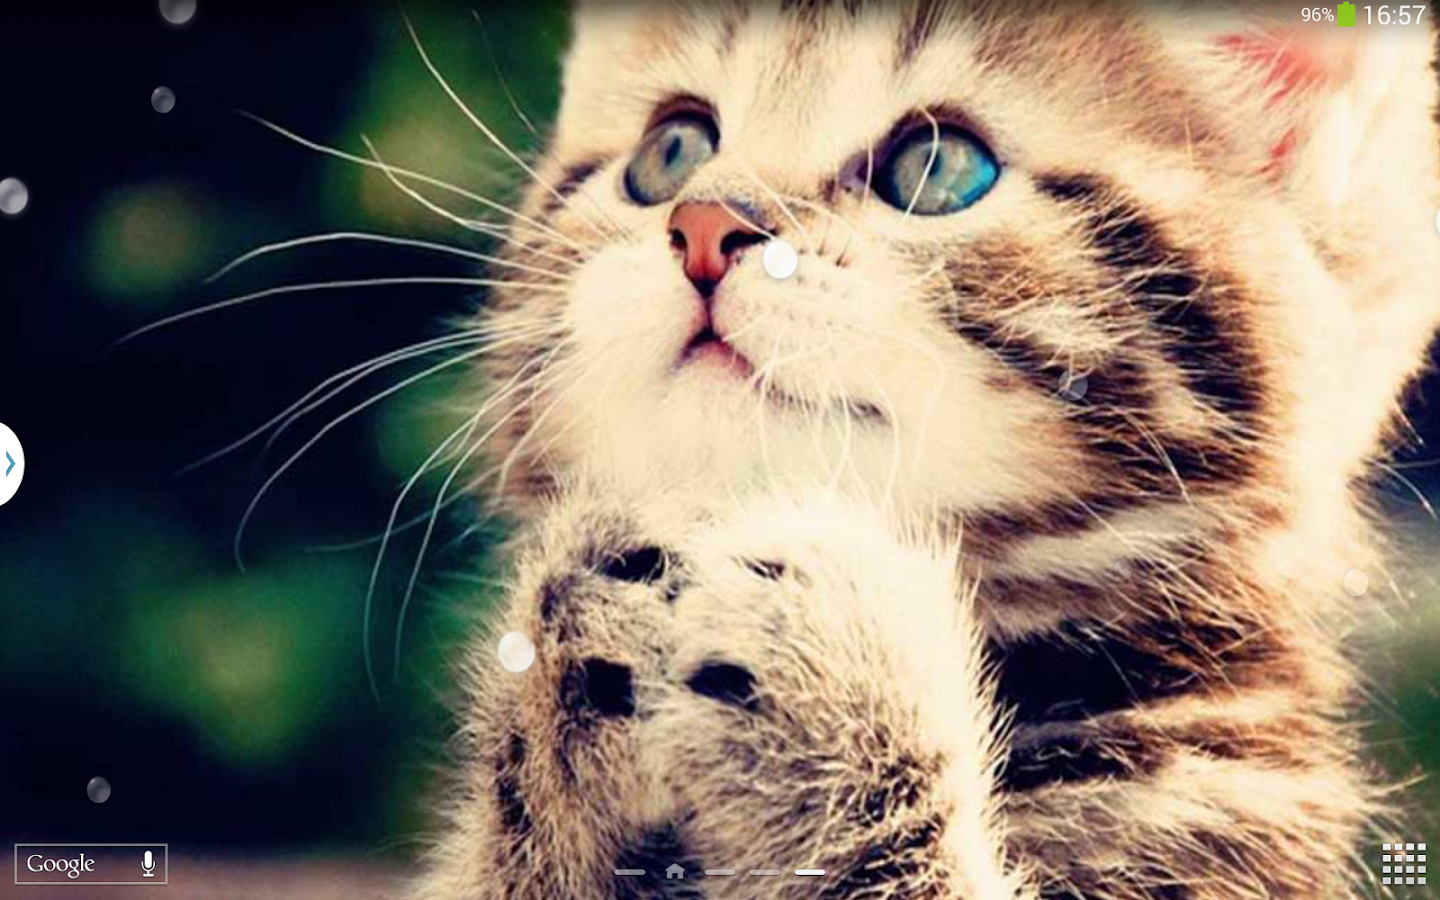 Top Fonds d'écran Chats - Chatons - Applications Android sur Google Play WN58